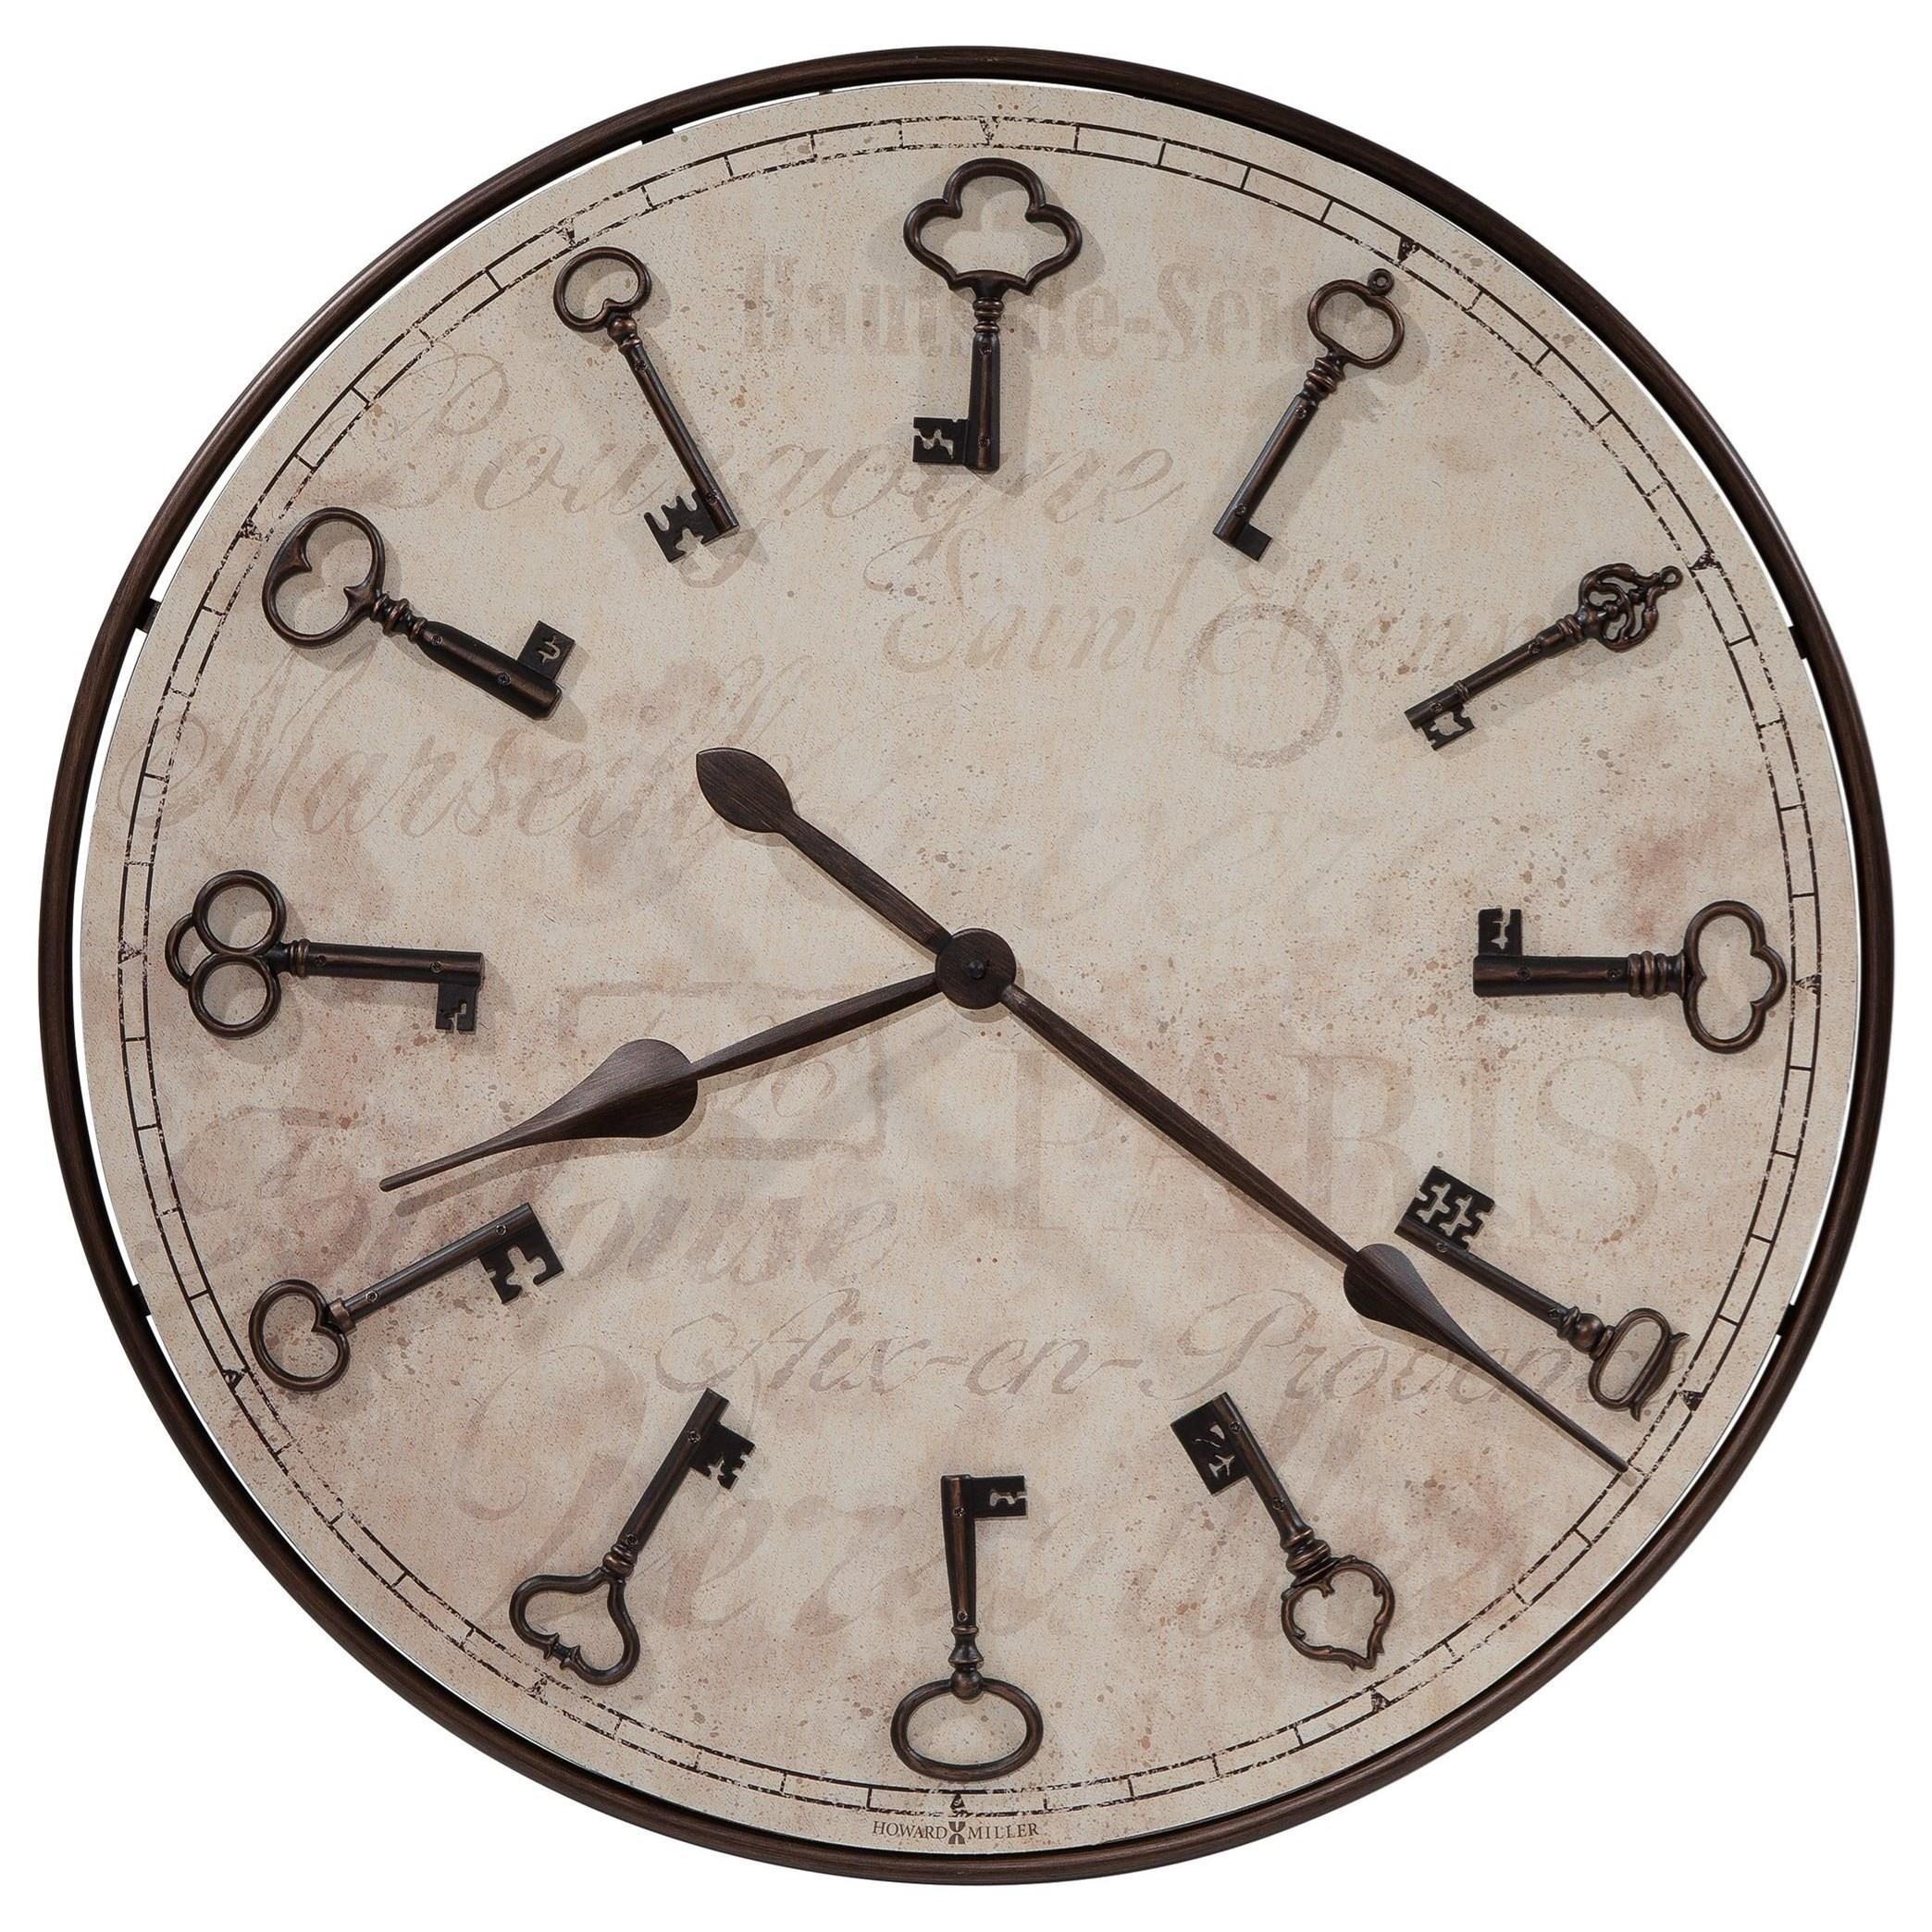 Howard Miller Wall Clocks Cle De Ville Wall Clock - Item Number: 625-579